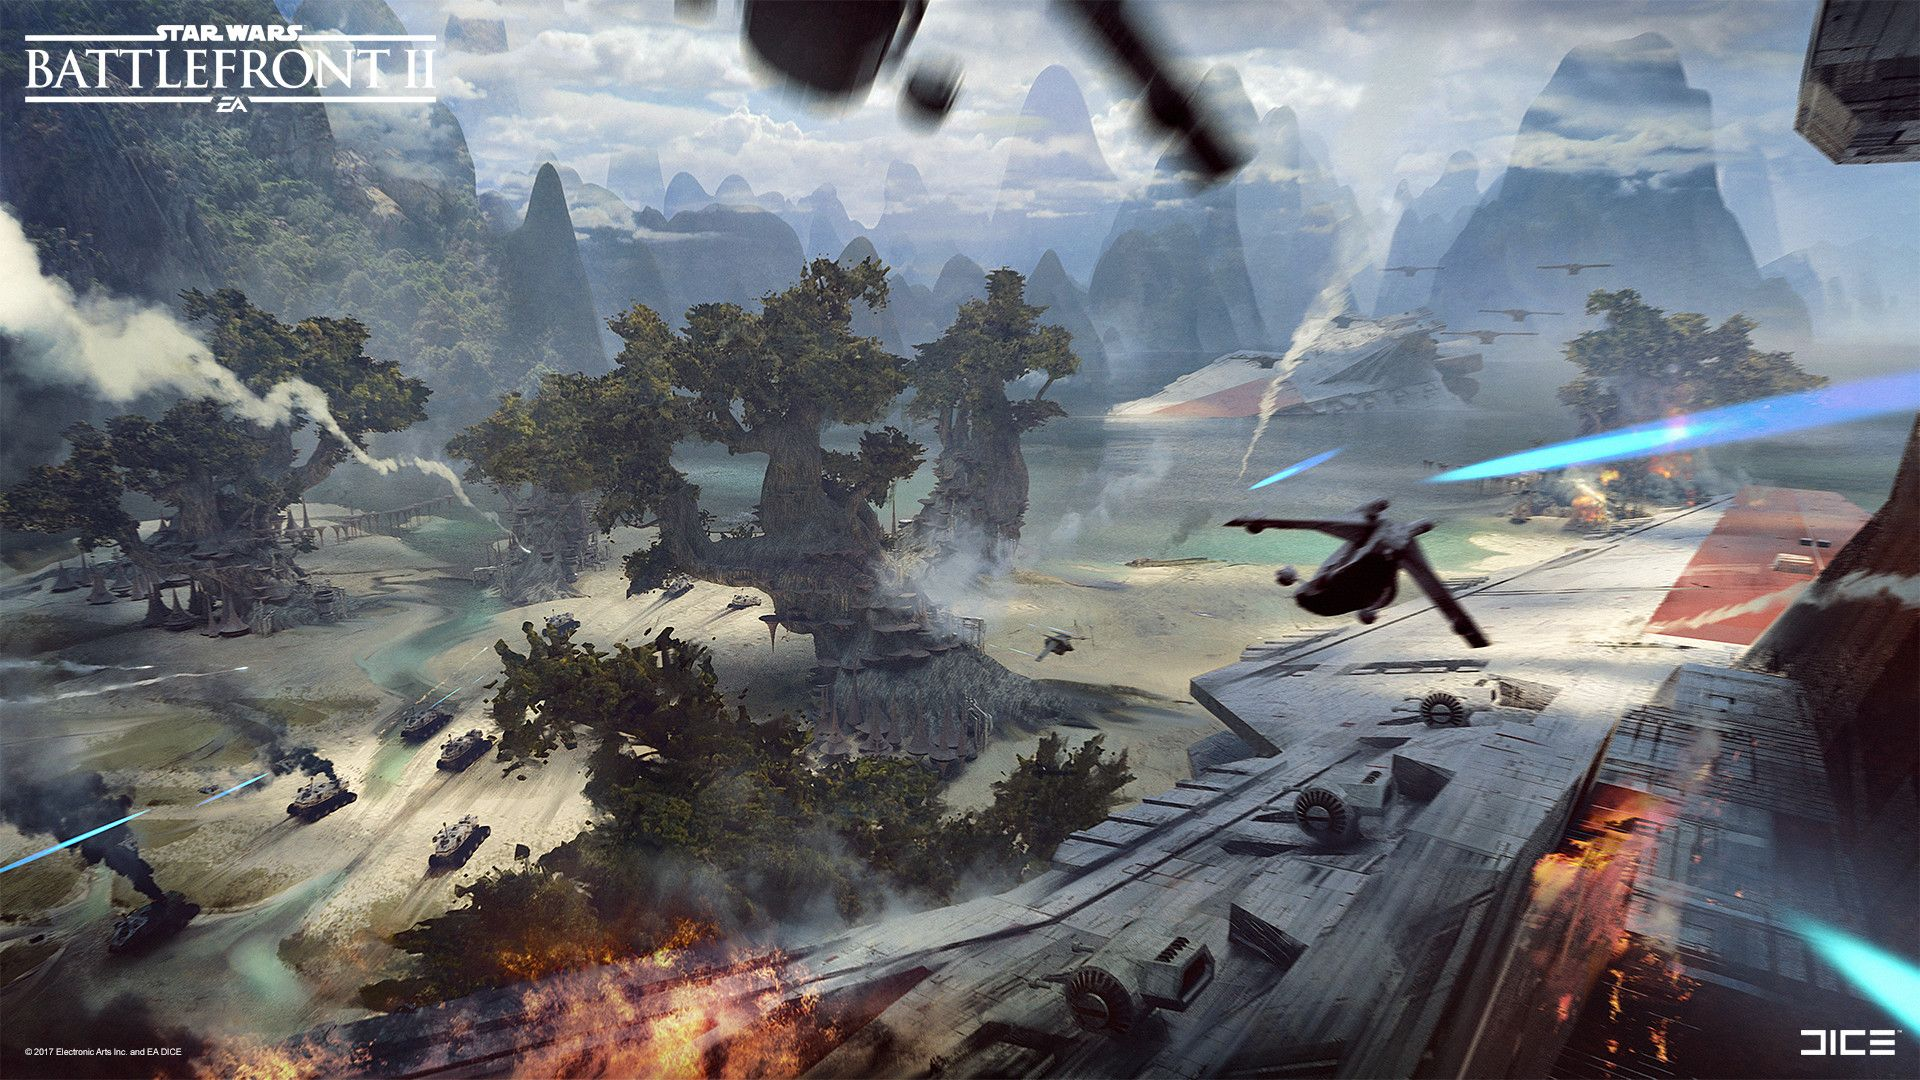 Some Ideas Of How The Epicness Of The Kashyyyk Battles Could Feel